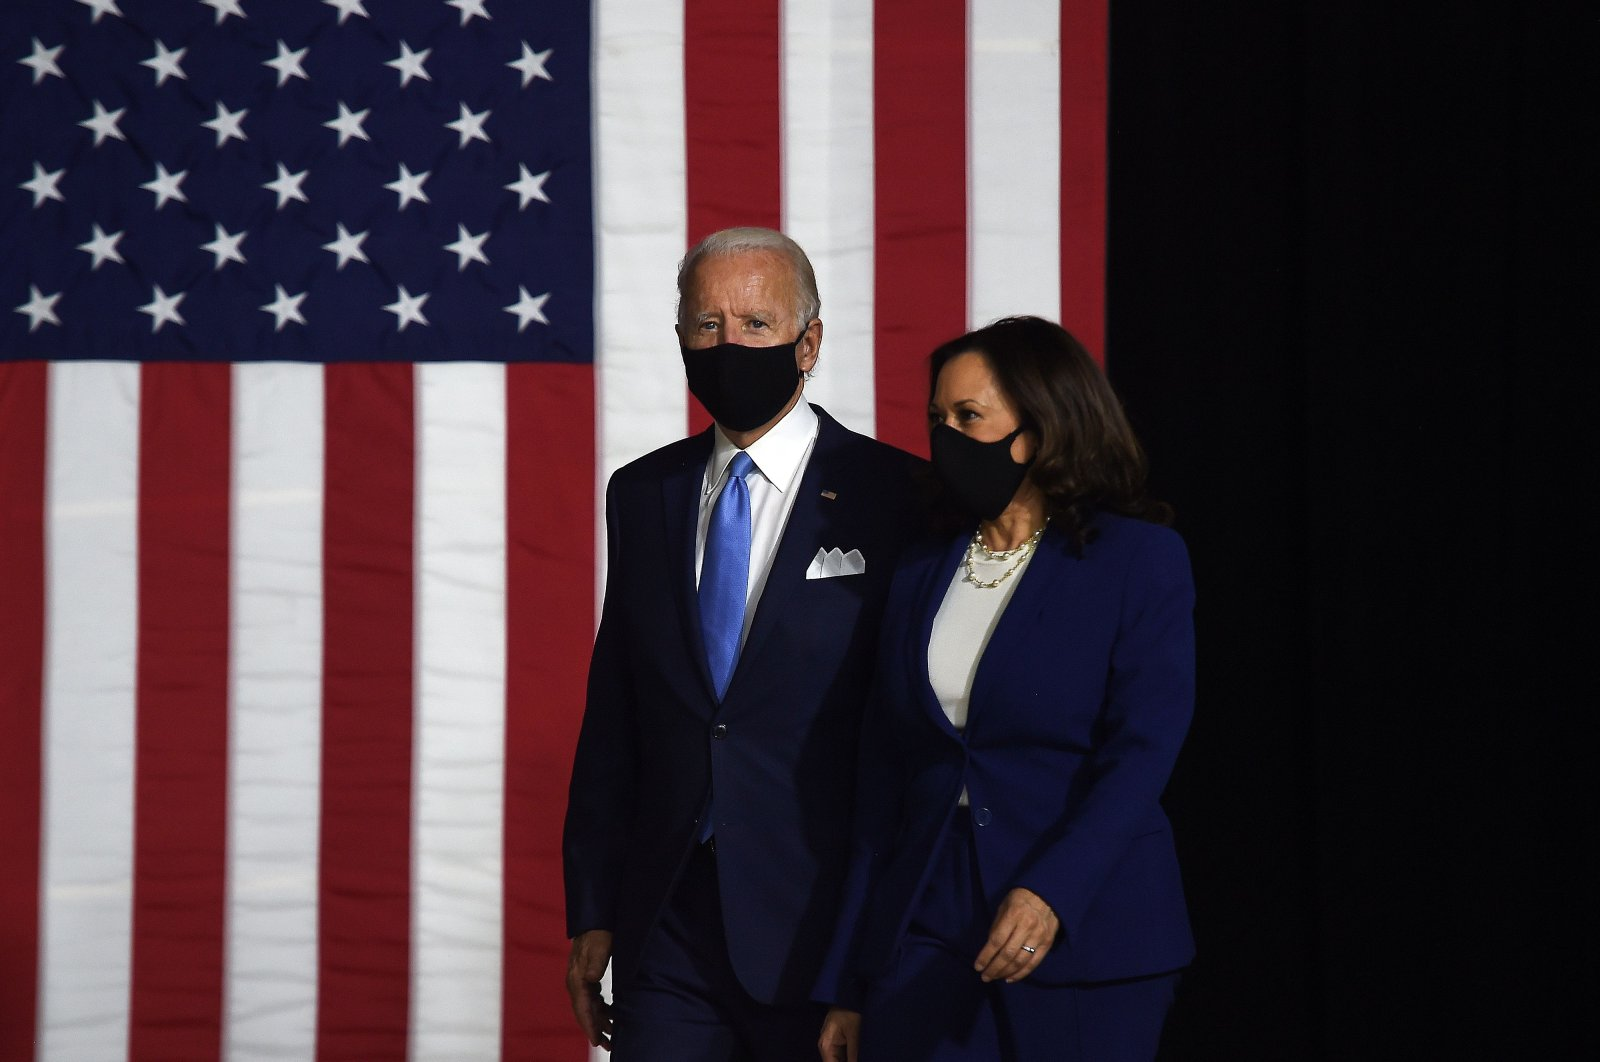 Democratic presidential nominee and former U.S. Vice President Joe Biden (L) and vice presidential running mate, U.S. Senator Kamala Harris, arrive to conduct their first press conference together in Wilmington, Delaware, Aug. 12, 2020. (AFP Photo)